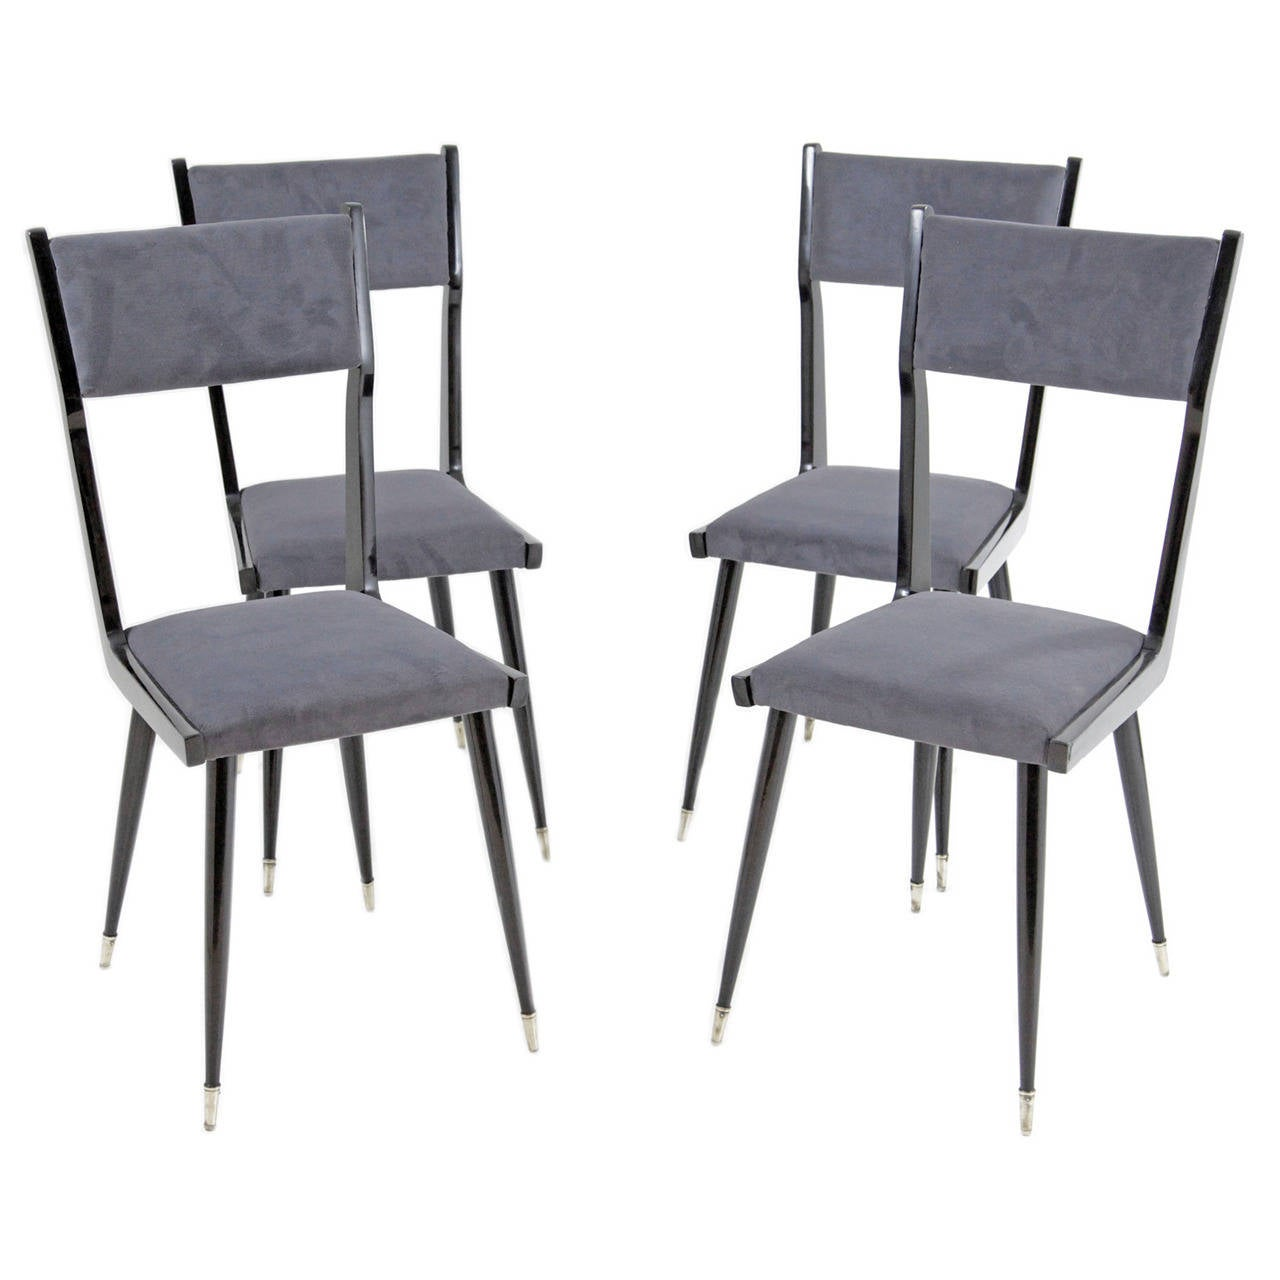 Lovely Set of Four Italian Chairs, 1970s